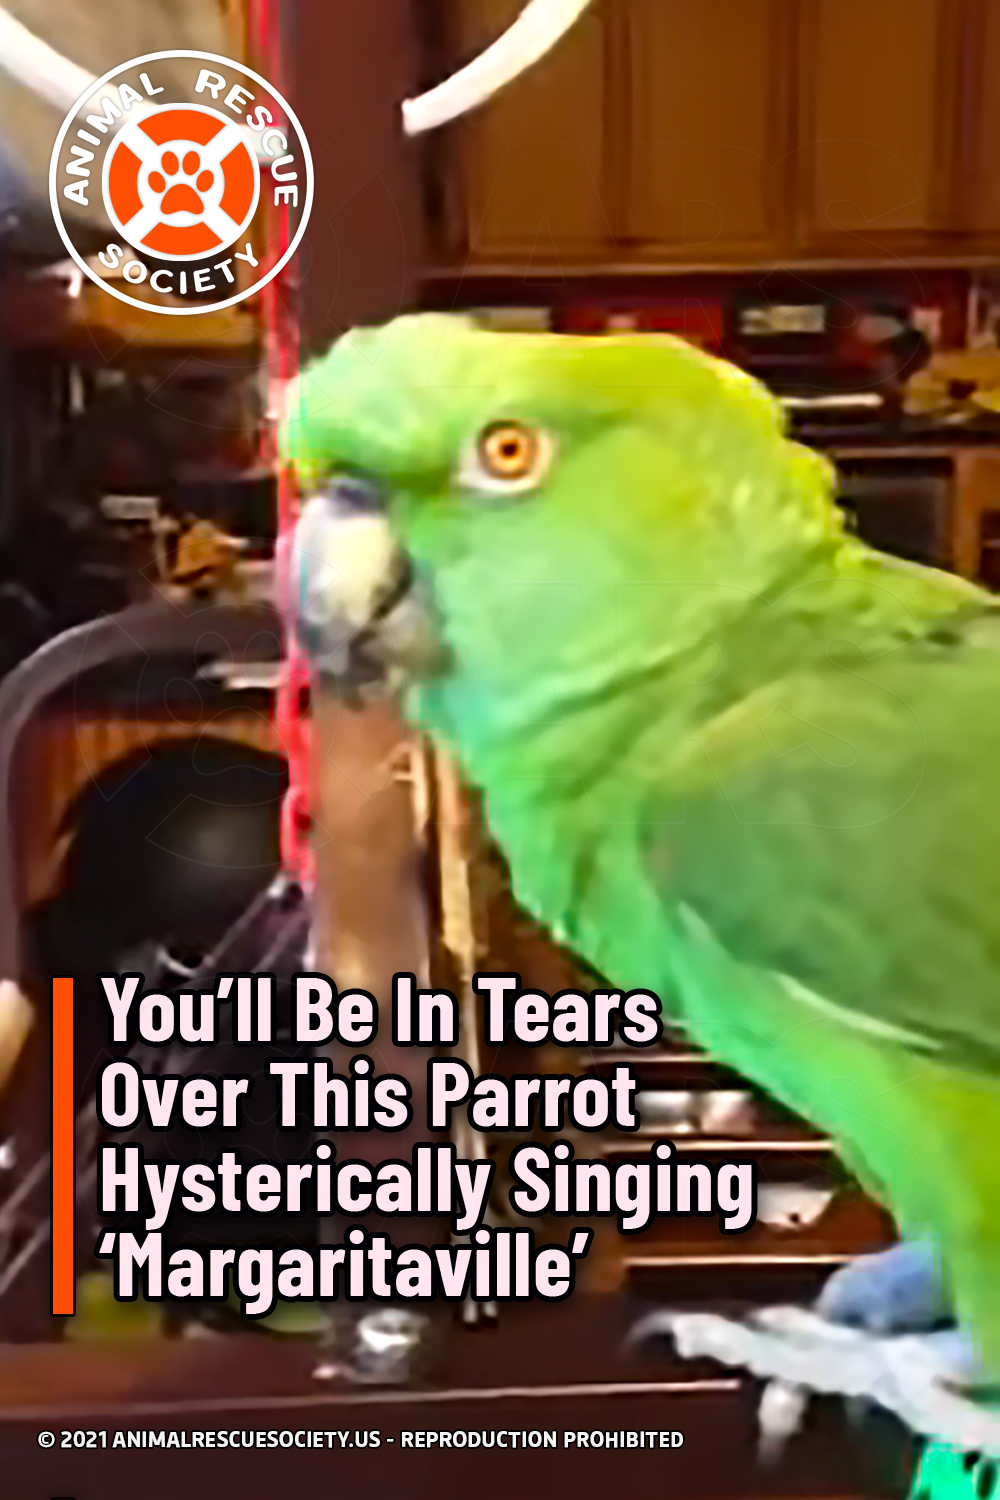 You'll Be In Tears Over This Parrot Hysterically Singing 'Margaritaville'